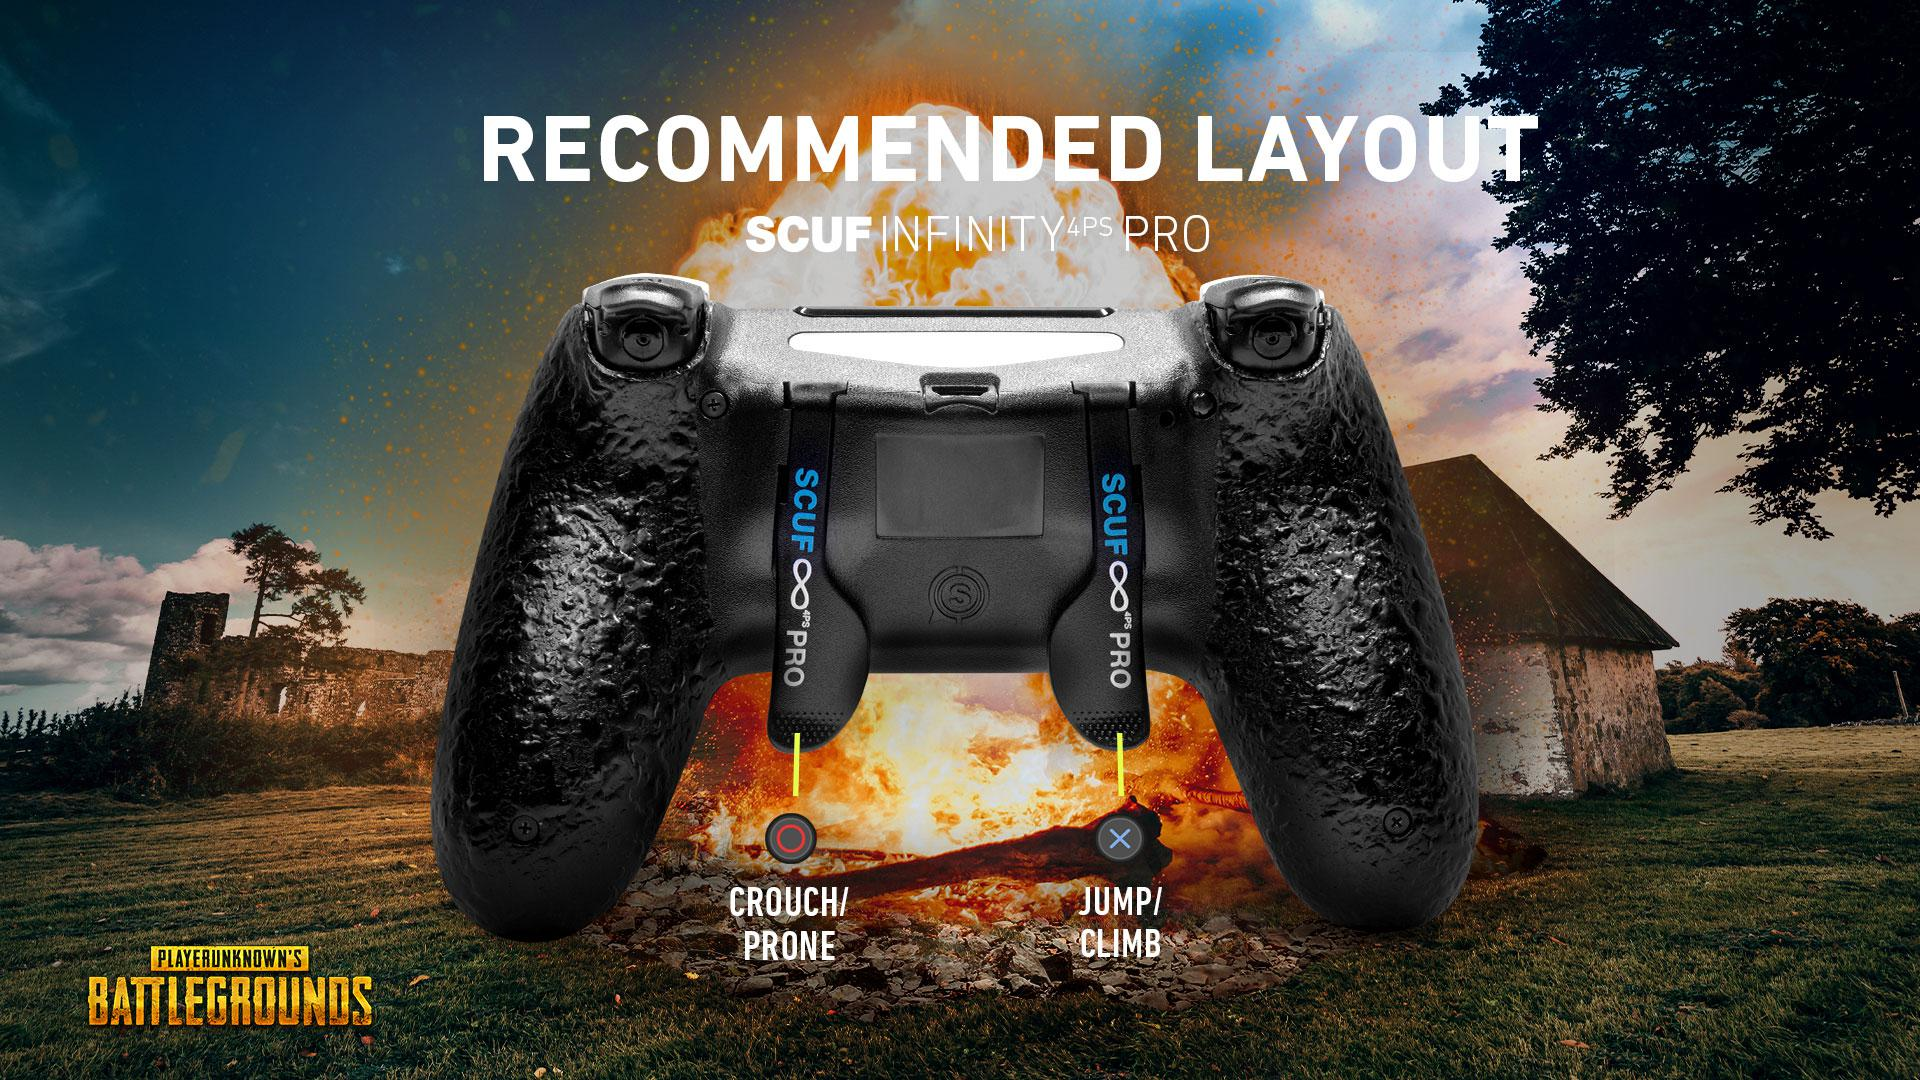 SCUF INFINITY4PSPRO PUBG PS4 PC CONTROLLER SET UP